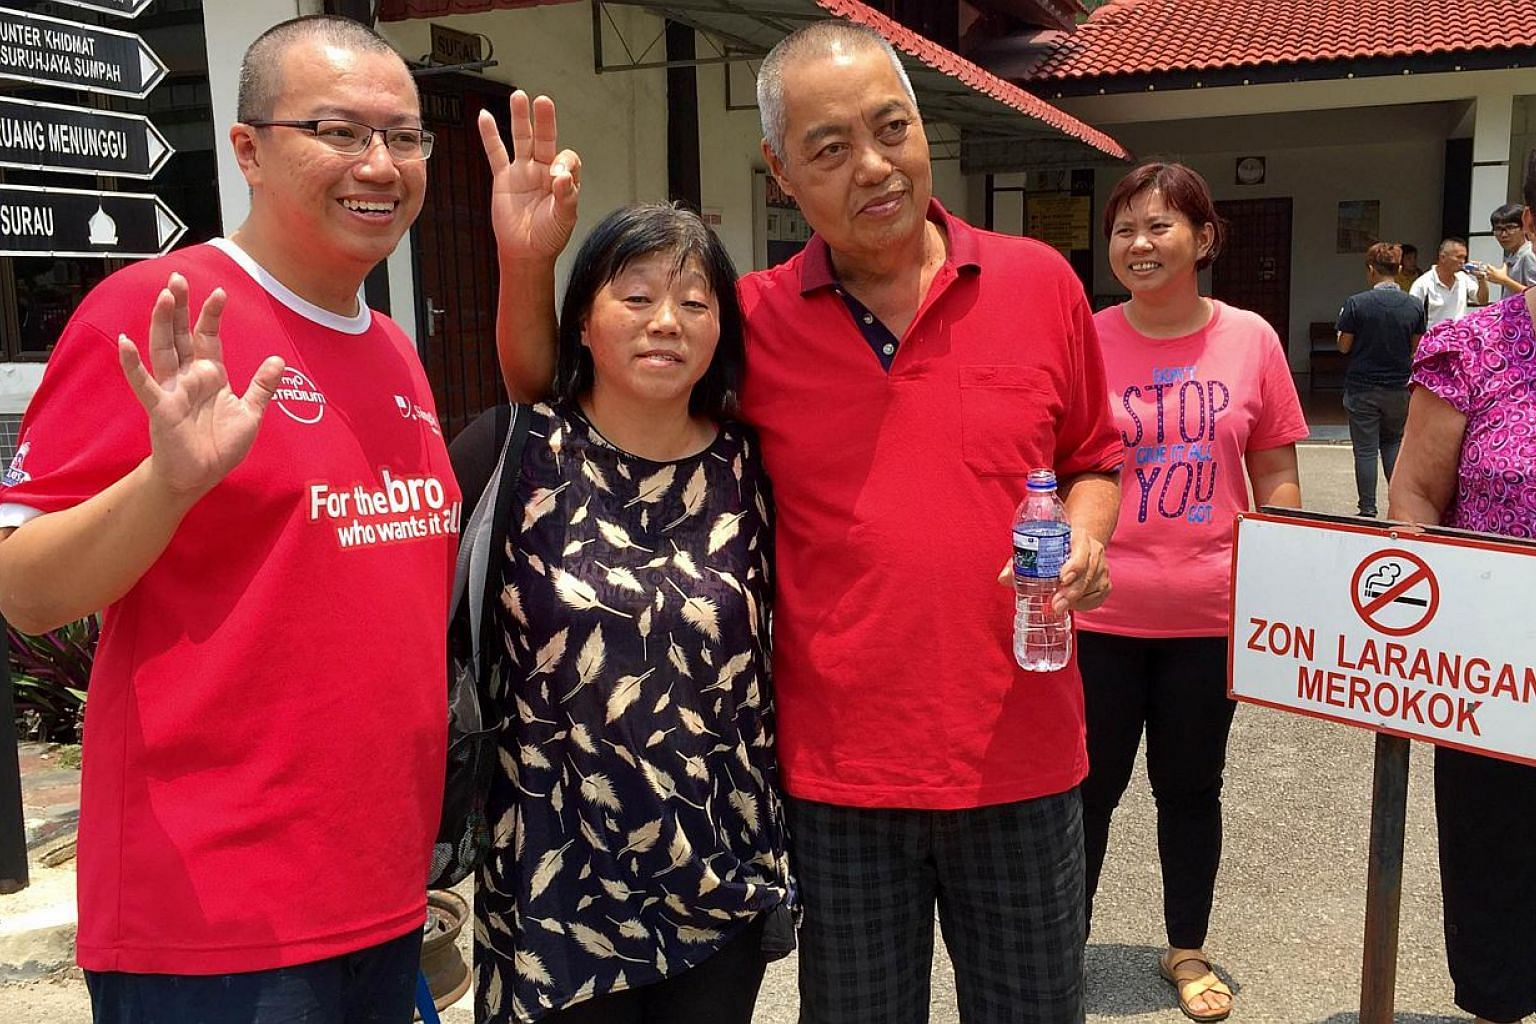 Malaysian Moo He Hong (third from left) and his Singaporean son Moo Wee Keong with his Singaporean wife Kuek Soo Lan (second from left). -- ST PHOTO: SHANNON TEOH